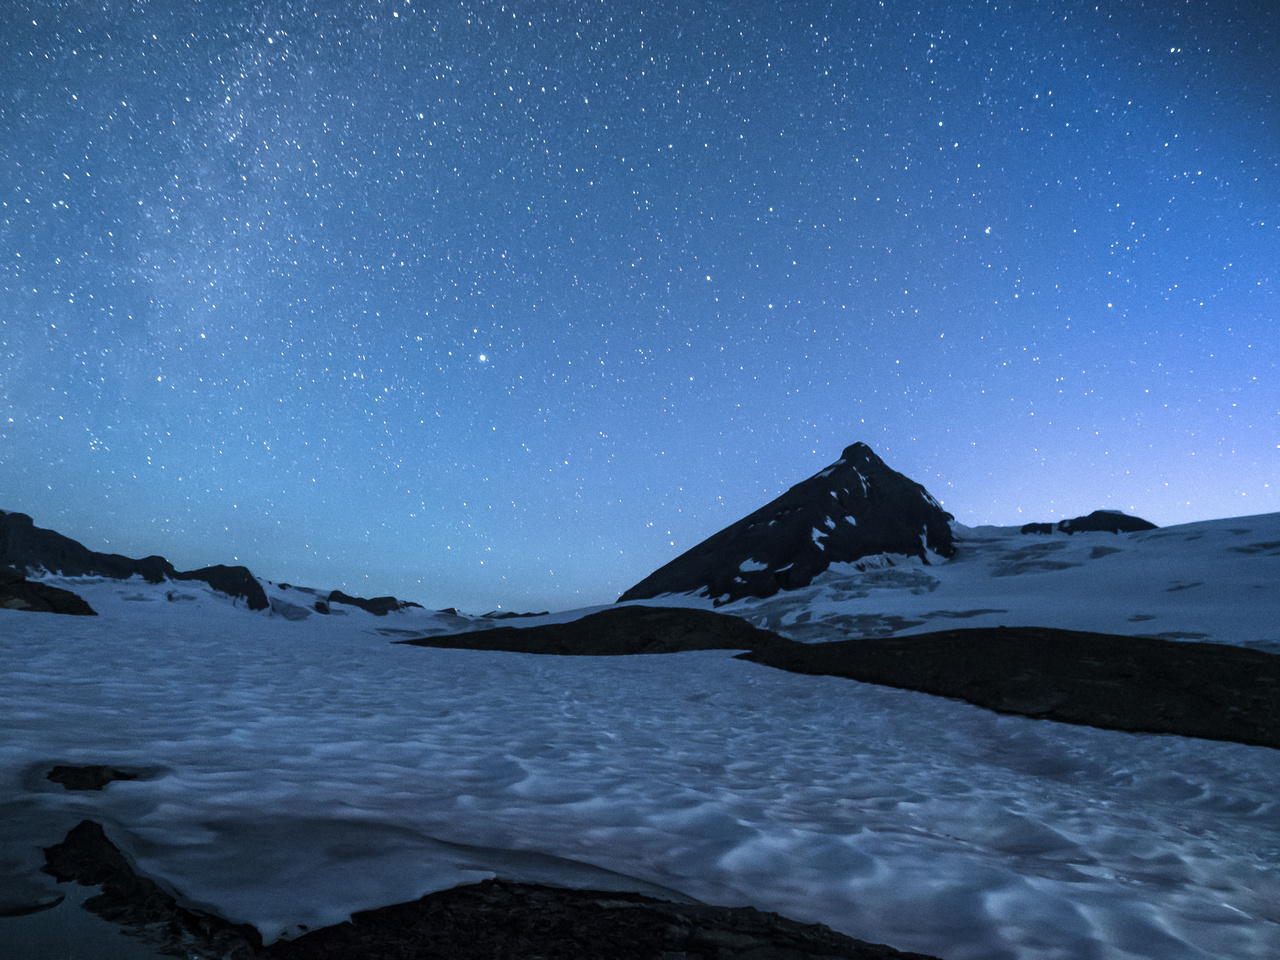 The tail end of the Milky Way just shows up at left with our mountain sitting pretty in very early morning light